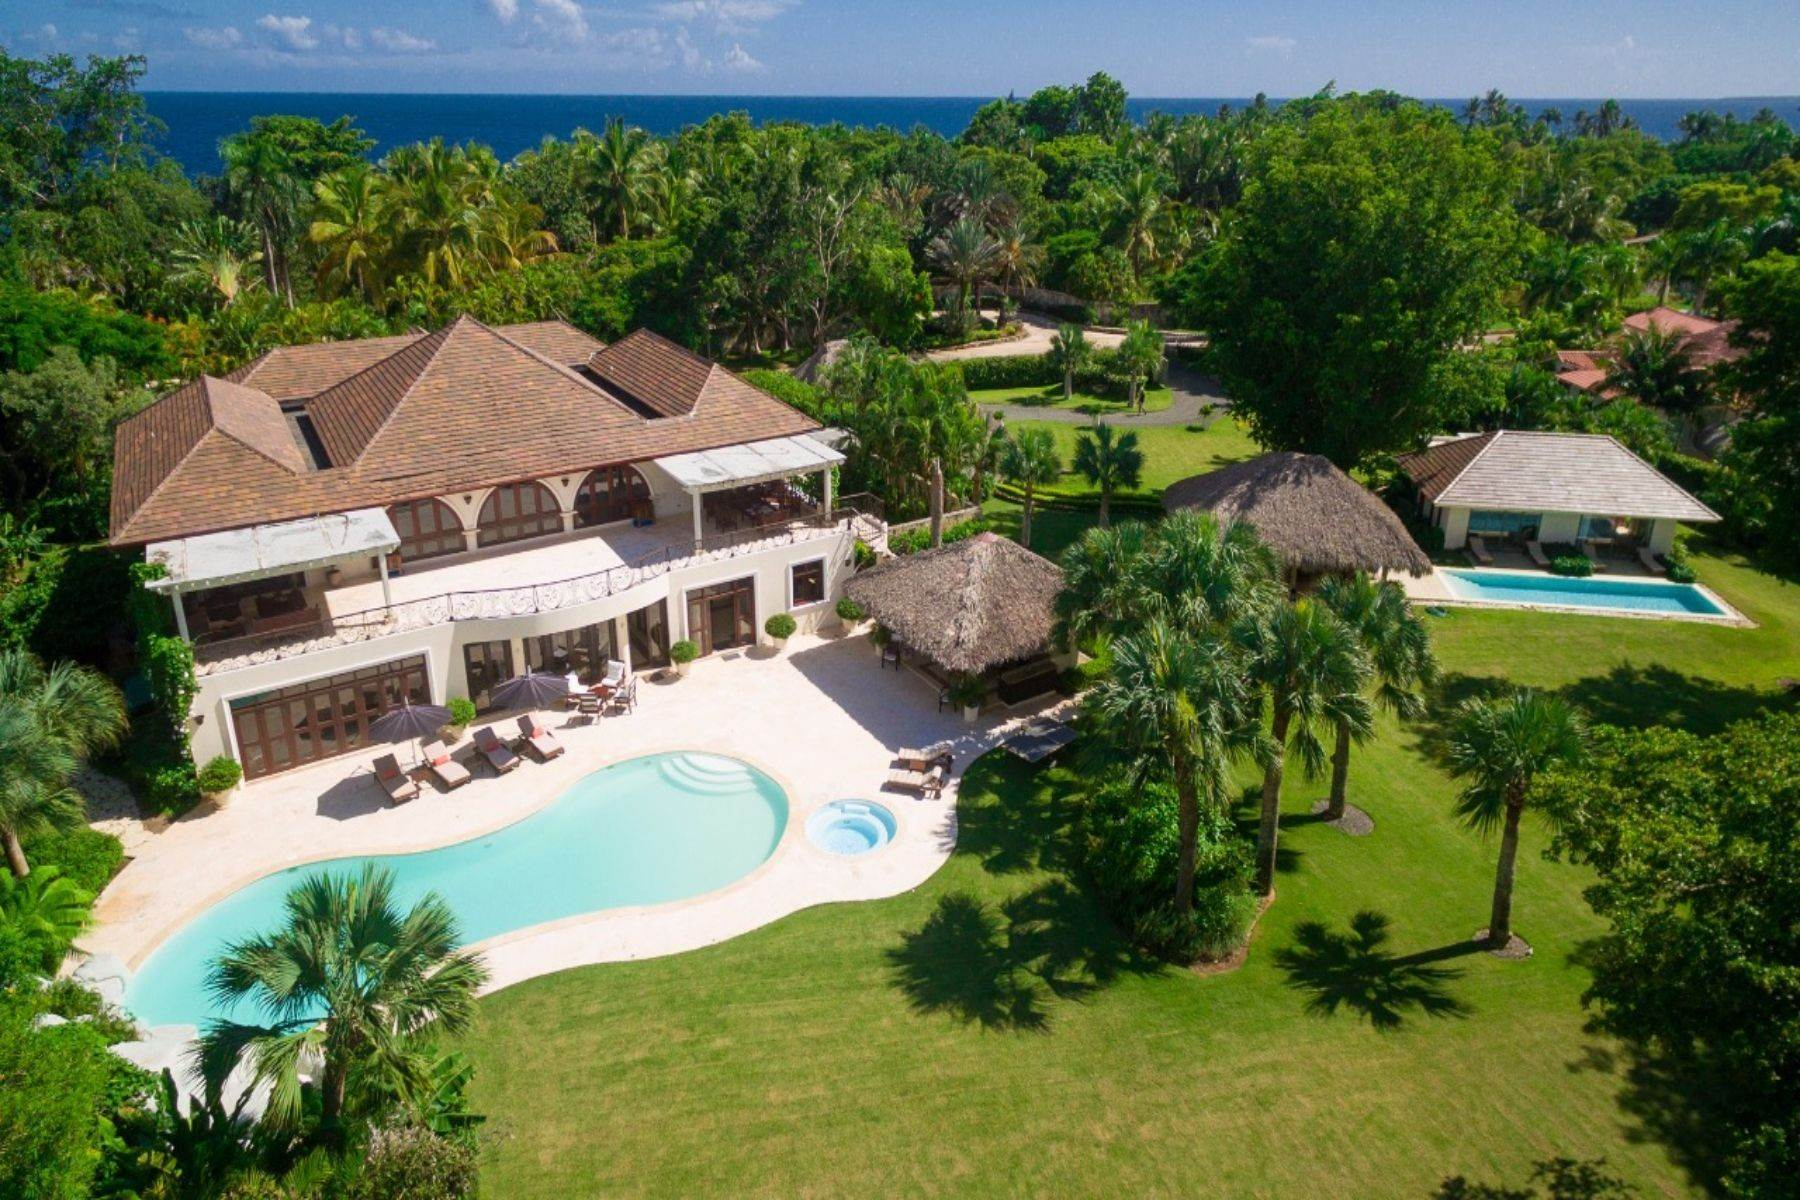 Single Family Homes at Punta Aguila # 41/42 - An exquisite double-lot estate close to the sea Casa De Campo, La Romana Dominican Republic